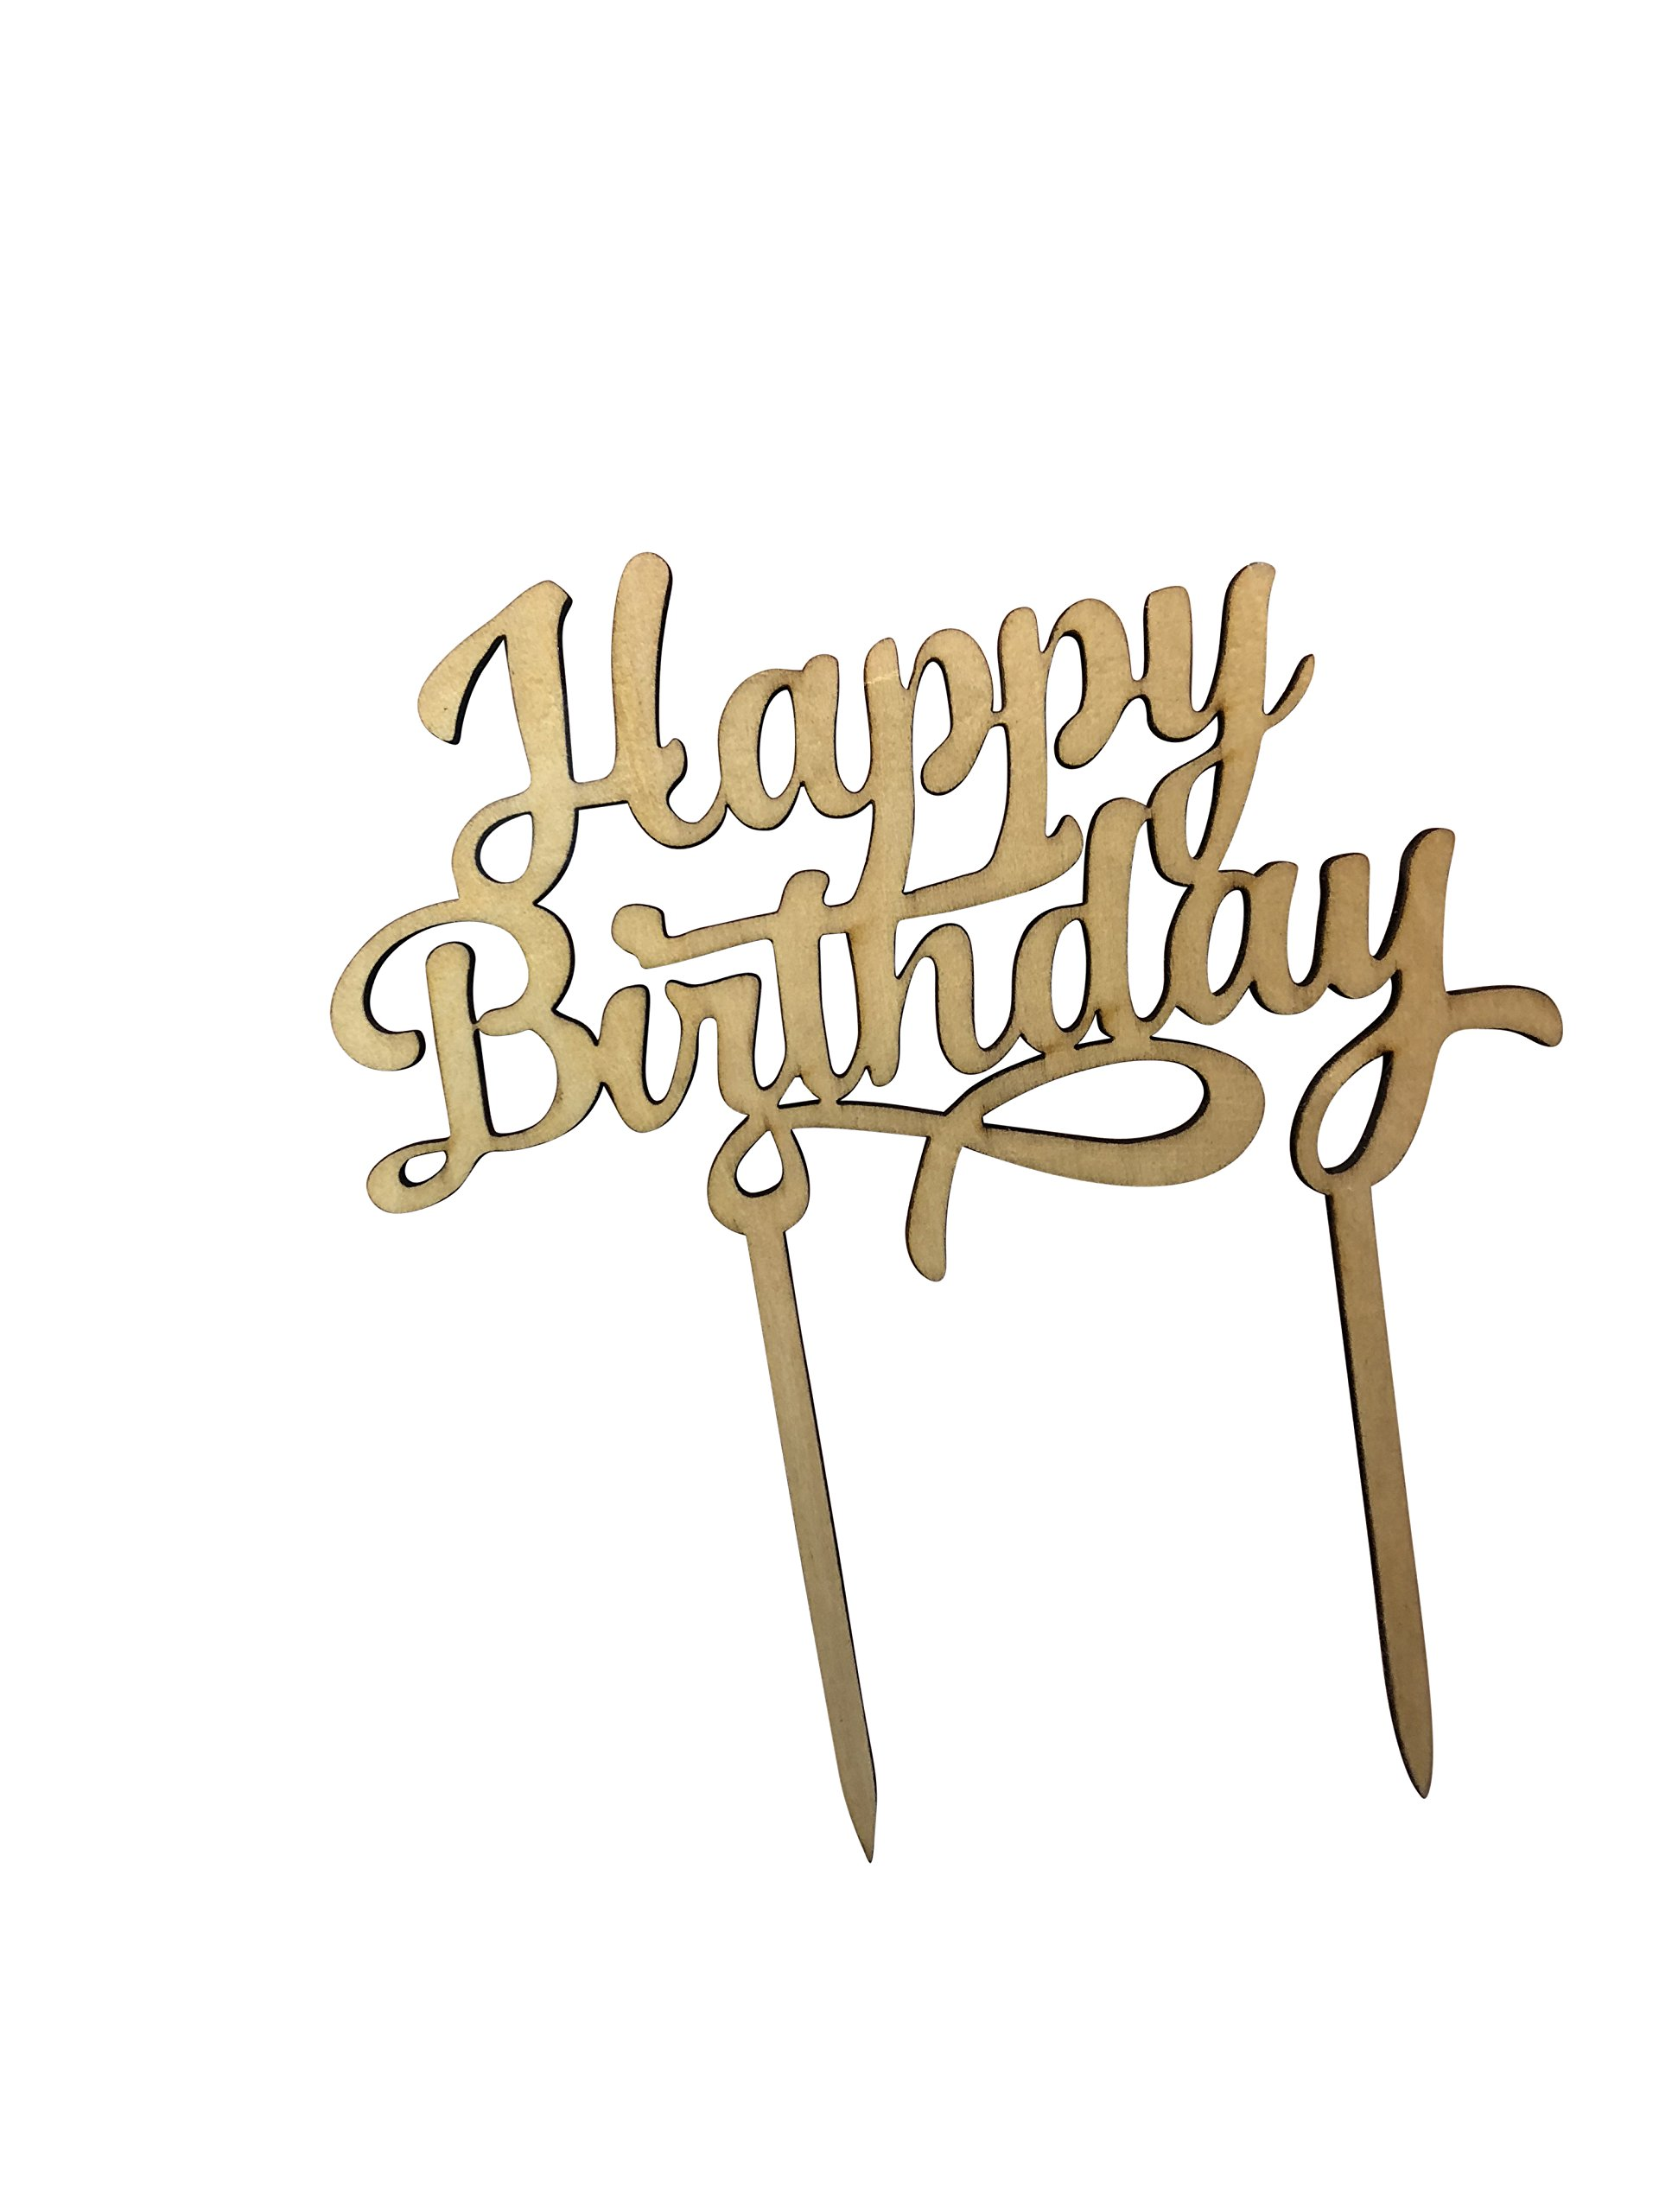 HAPPY BIRTHDAY Wooden Cake Topper - Celebration Cupcakes Decorating Pick Supplies - Cupcake Decor Party Cake Toppers - Food Safe Wood Decorations by Jolly Jon by Jolly Jon (Image #3)